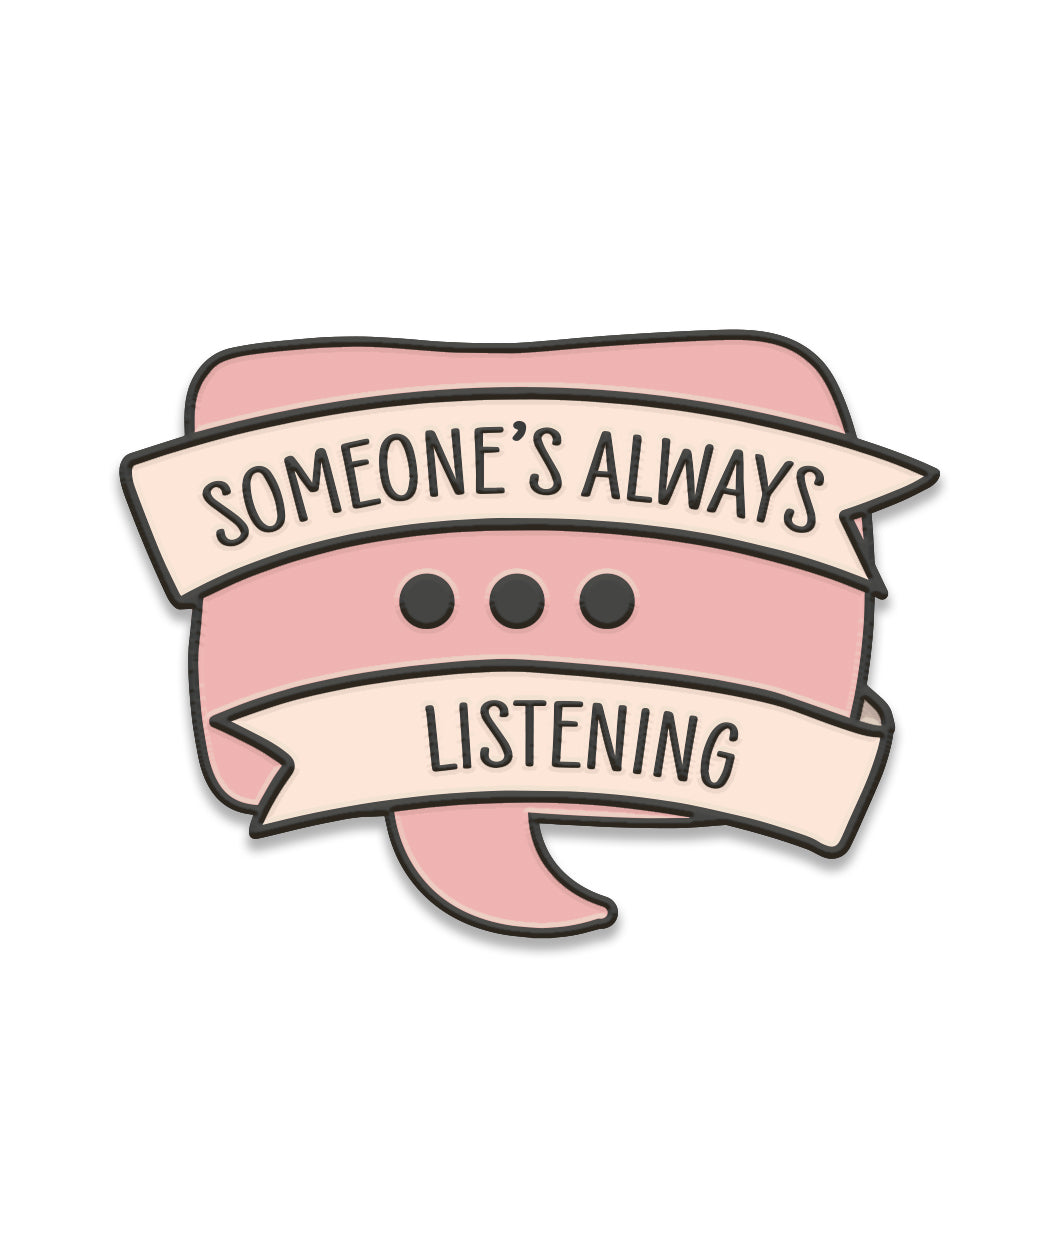 Someone's Always Listening Enamel Pin